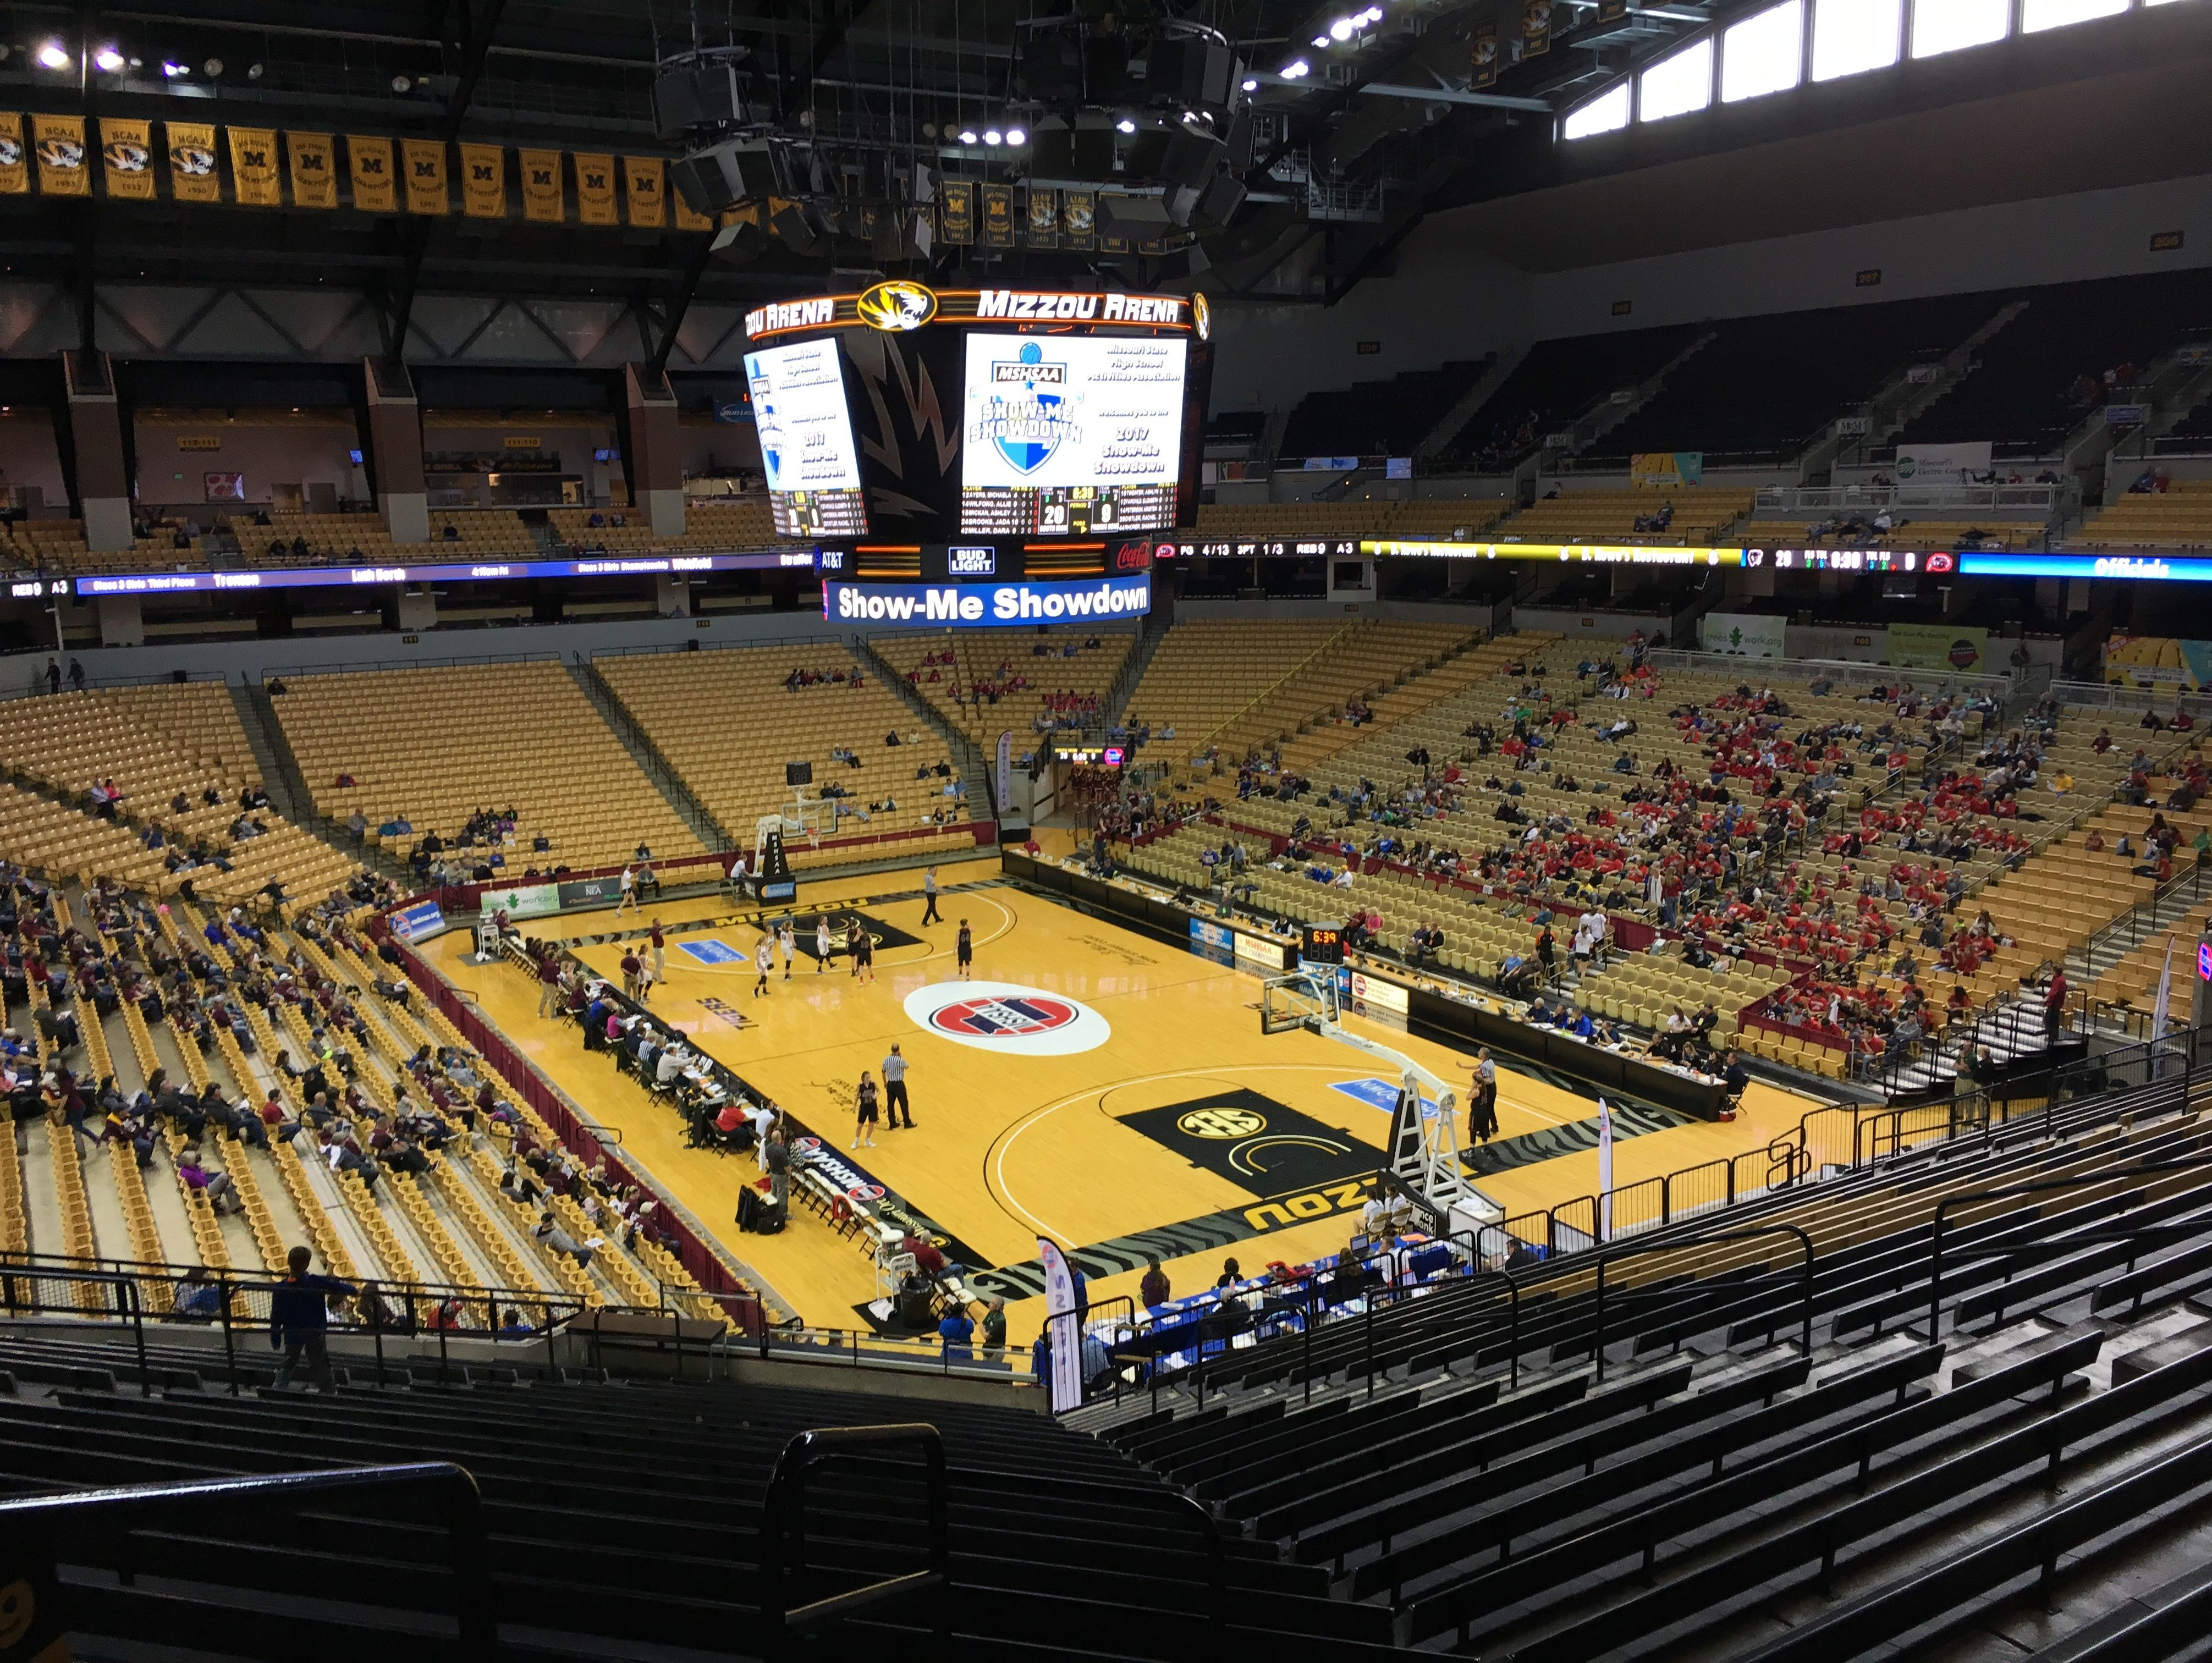 """Michael Porter Jr. tweeted March 24, 2017 that he hoped to play for a Missouri basketball team that could """"restore the atmosphere at Mizzou Arena."""""""